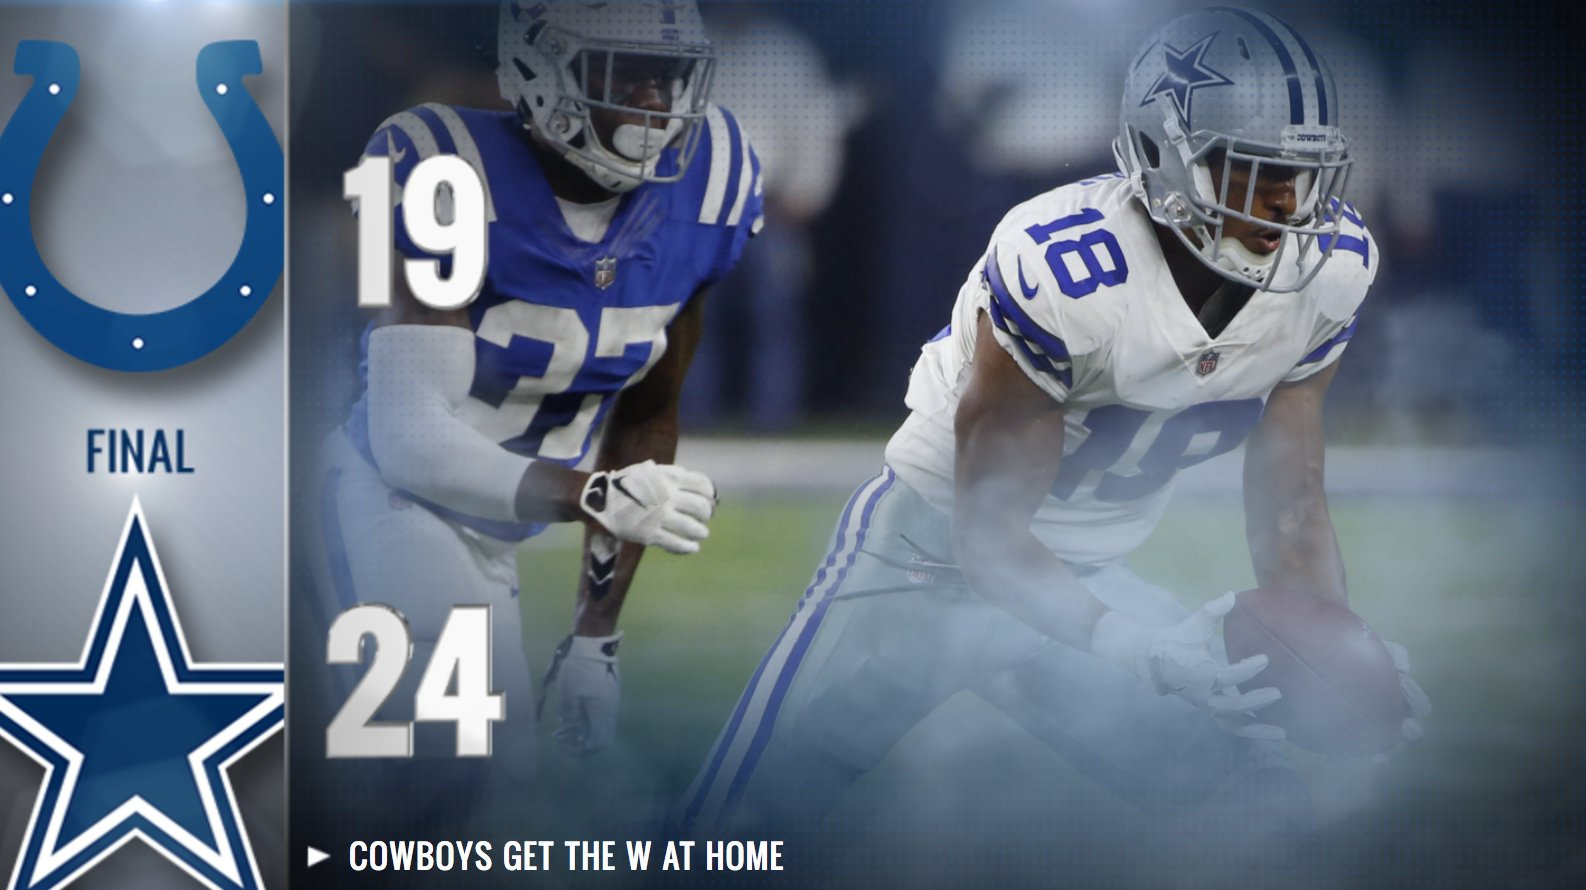 #DallasCowboys get the W at @ATTStadium  Happy to be home! #INDvsDAL https://t.co/bABidRThmk